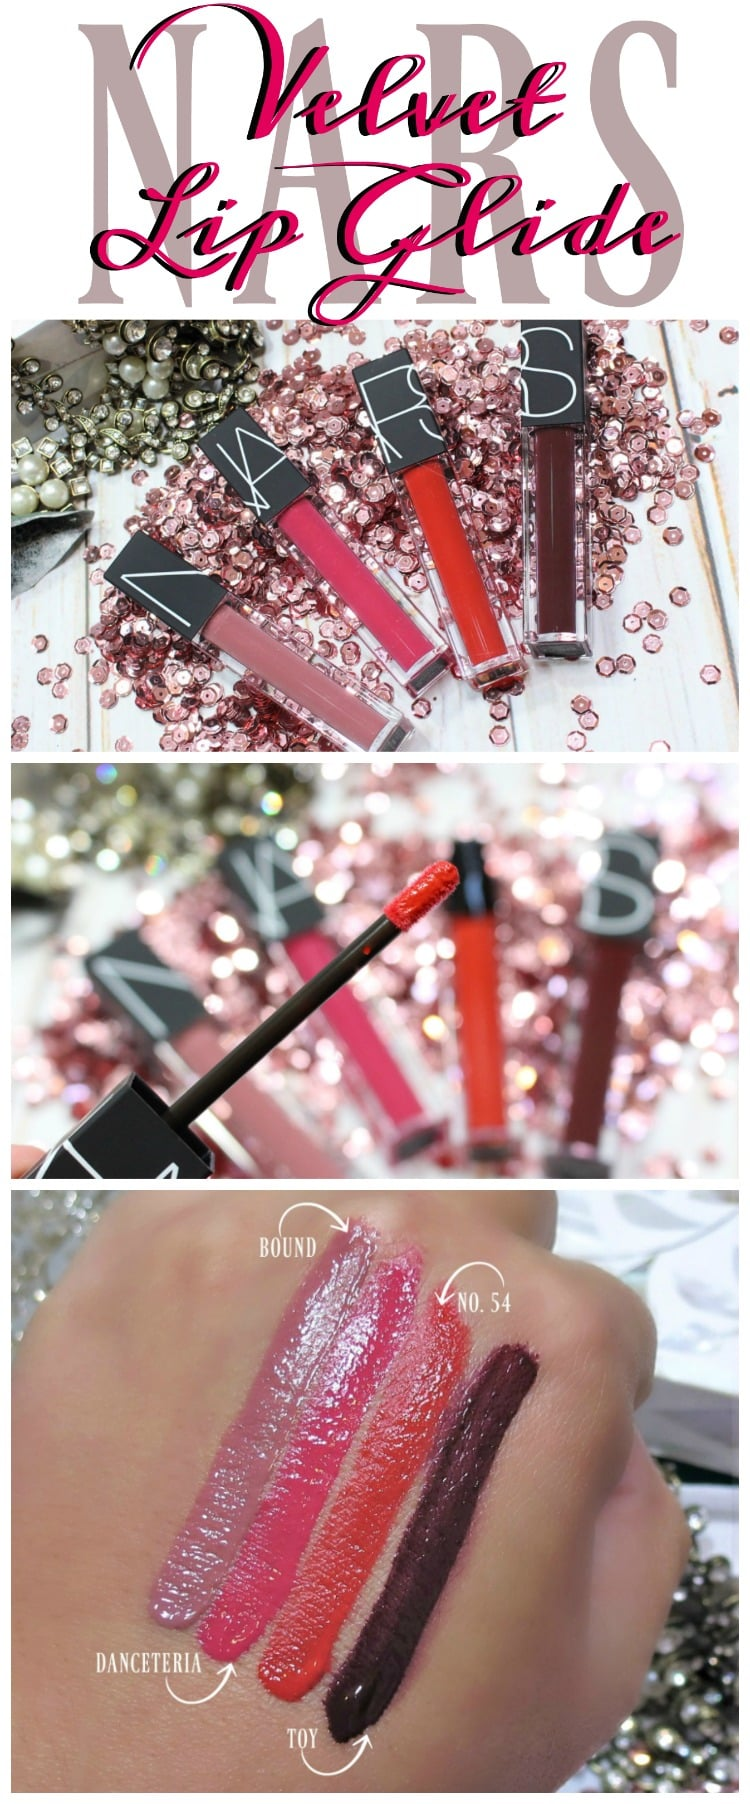 nars-velvet-lip-glide-swatches-review-pinterest